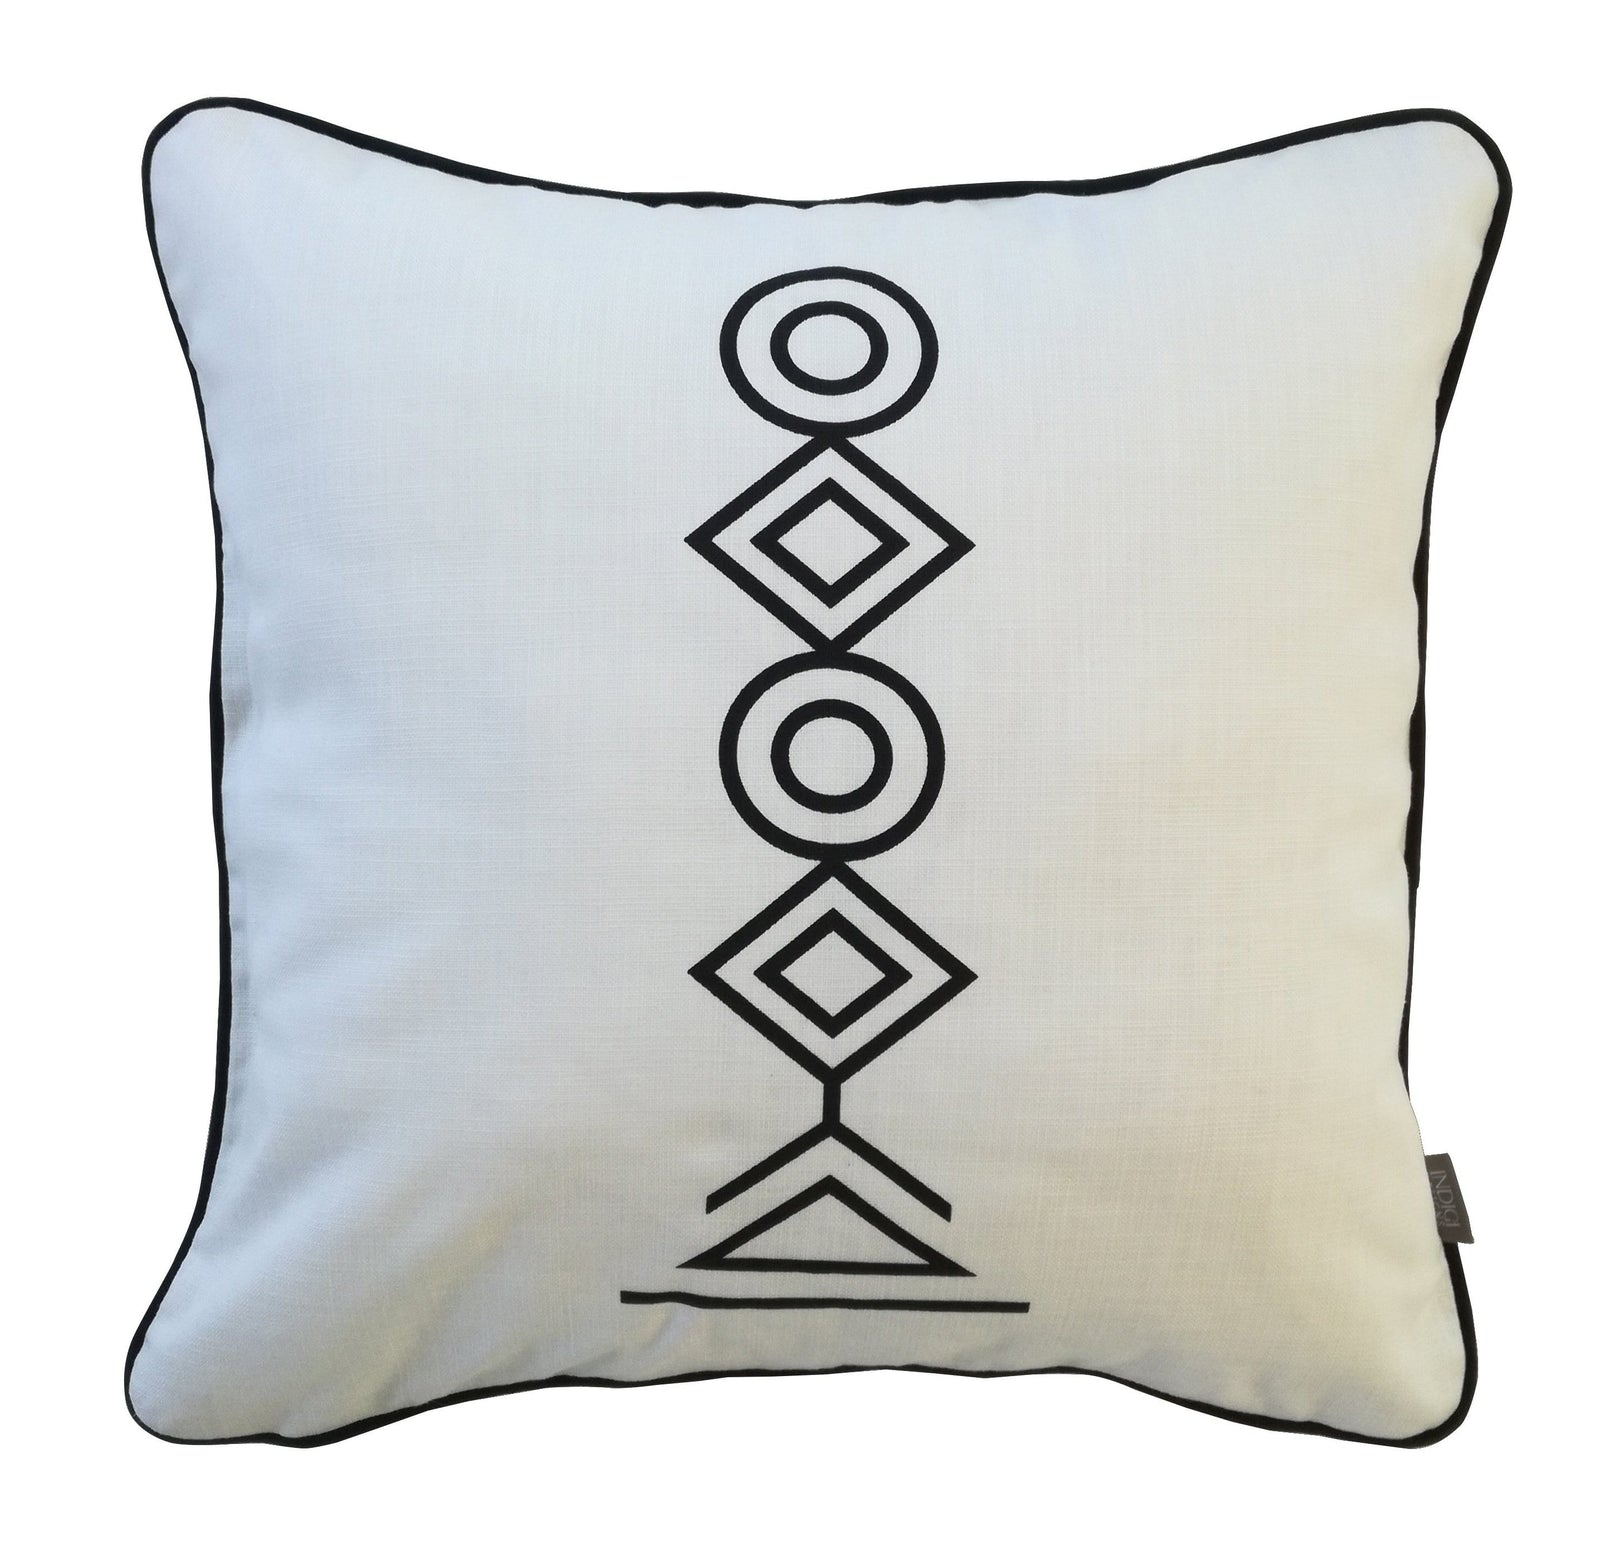 Totem Black on White Cushion Cover